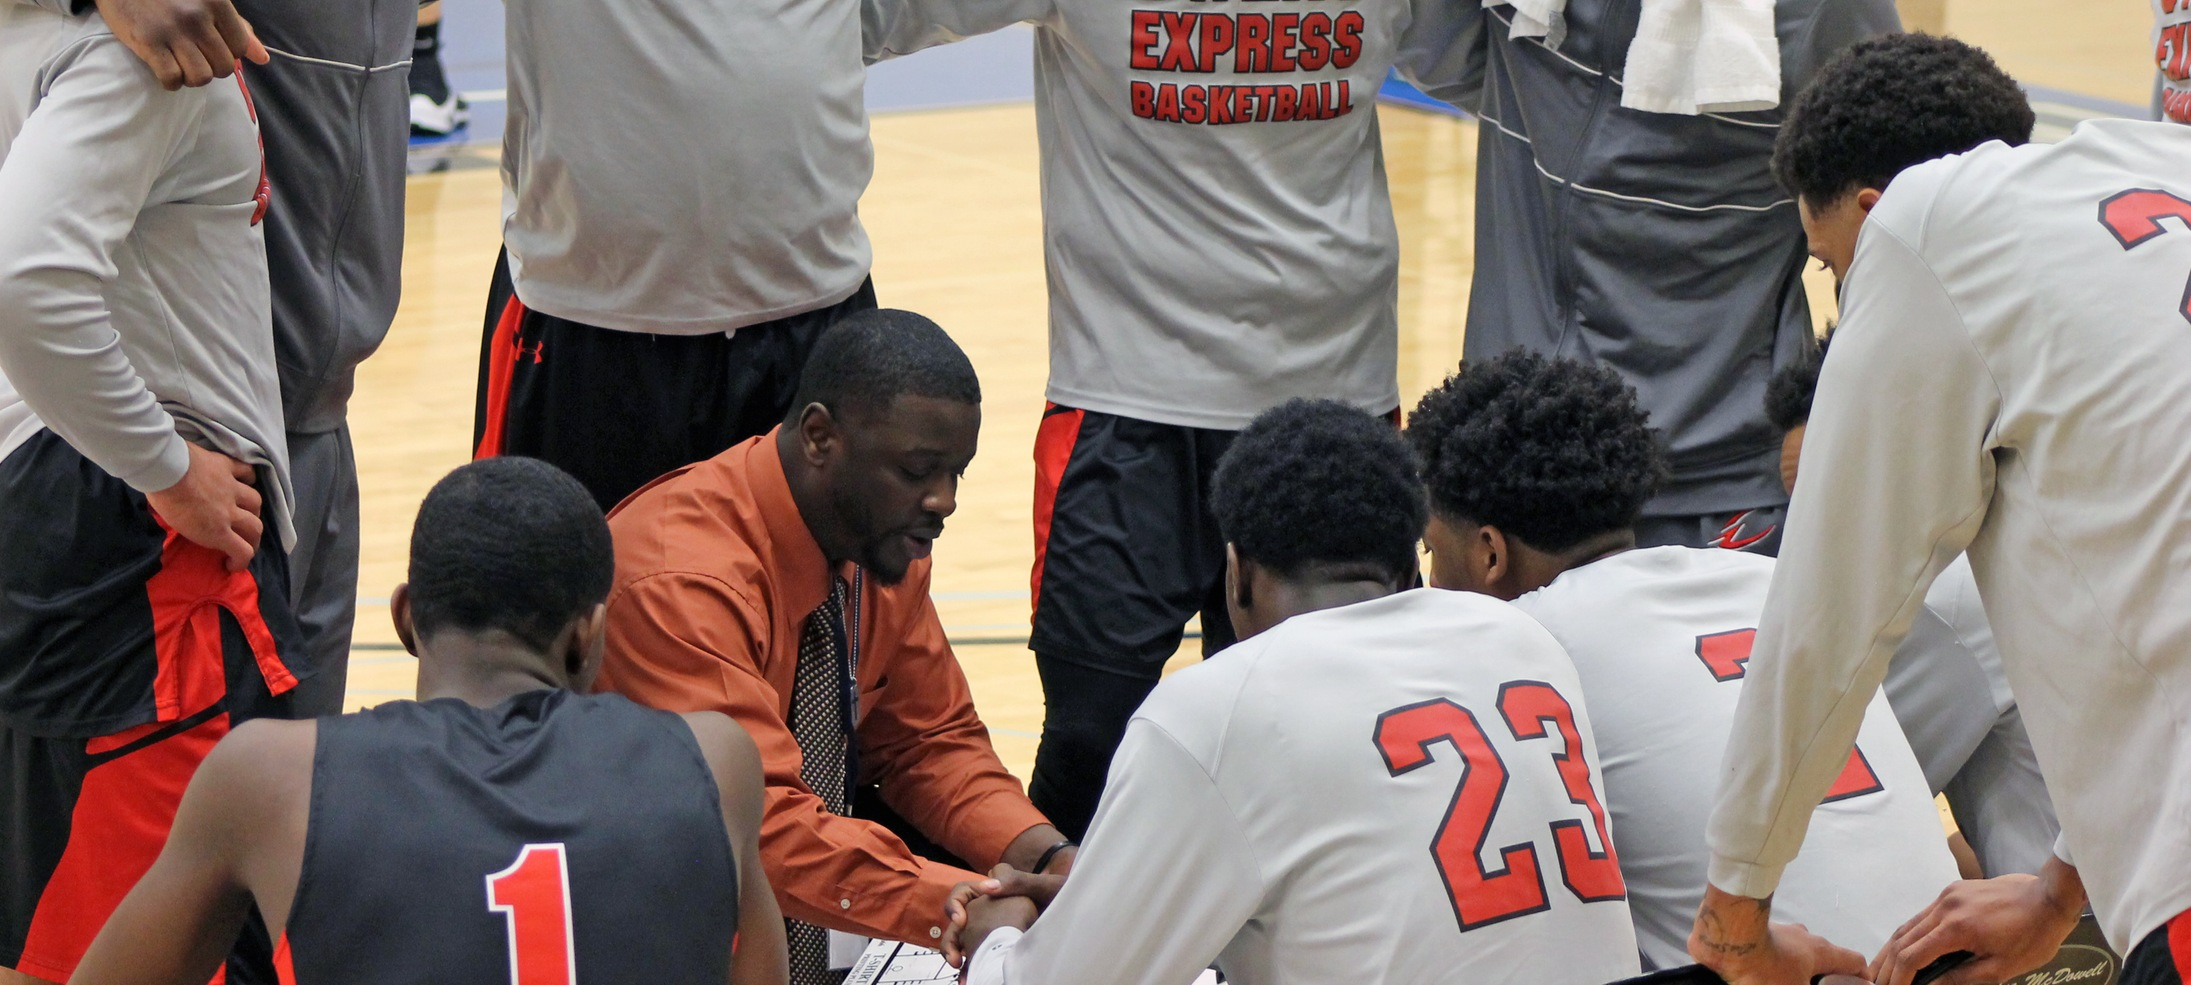 Cuyahoga Too Much Inside, Owens MBB Falls 84-58 In District 11 Semifinal